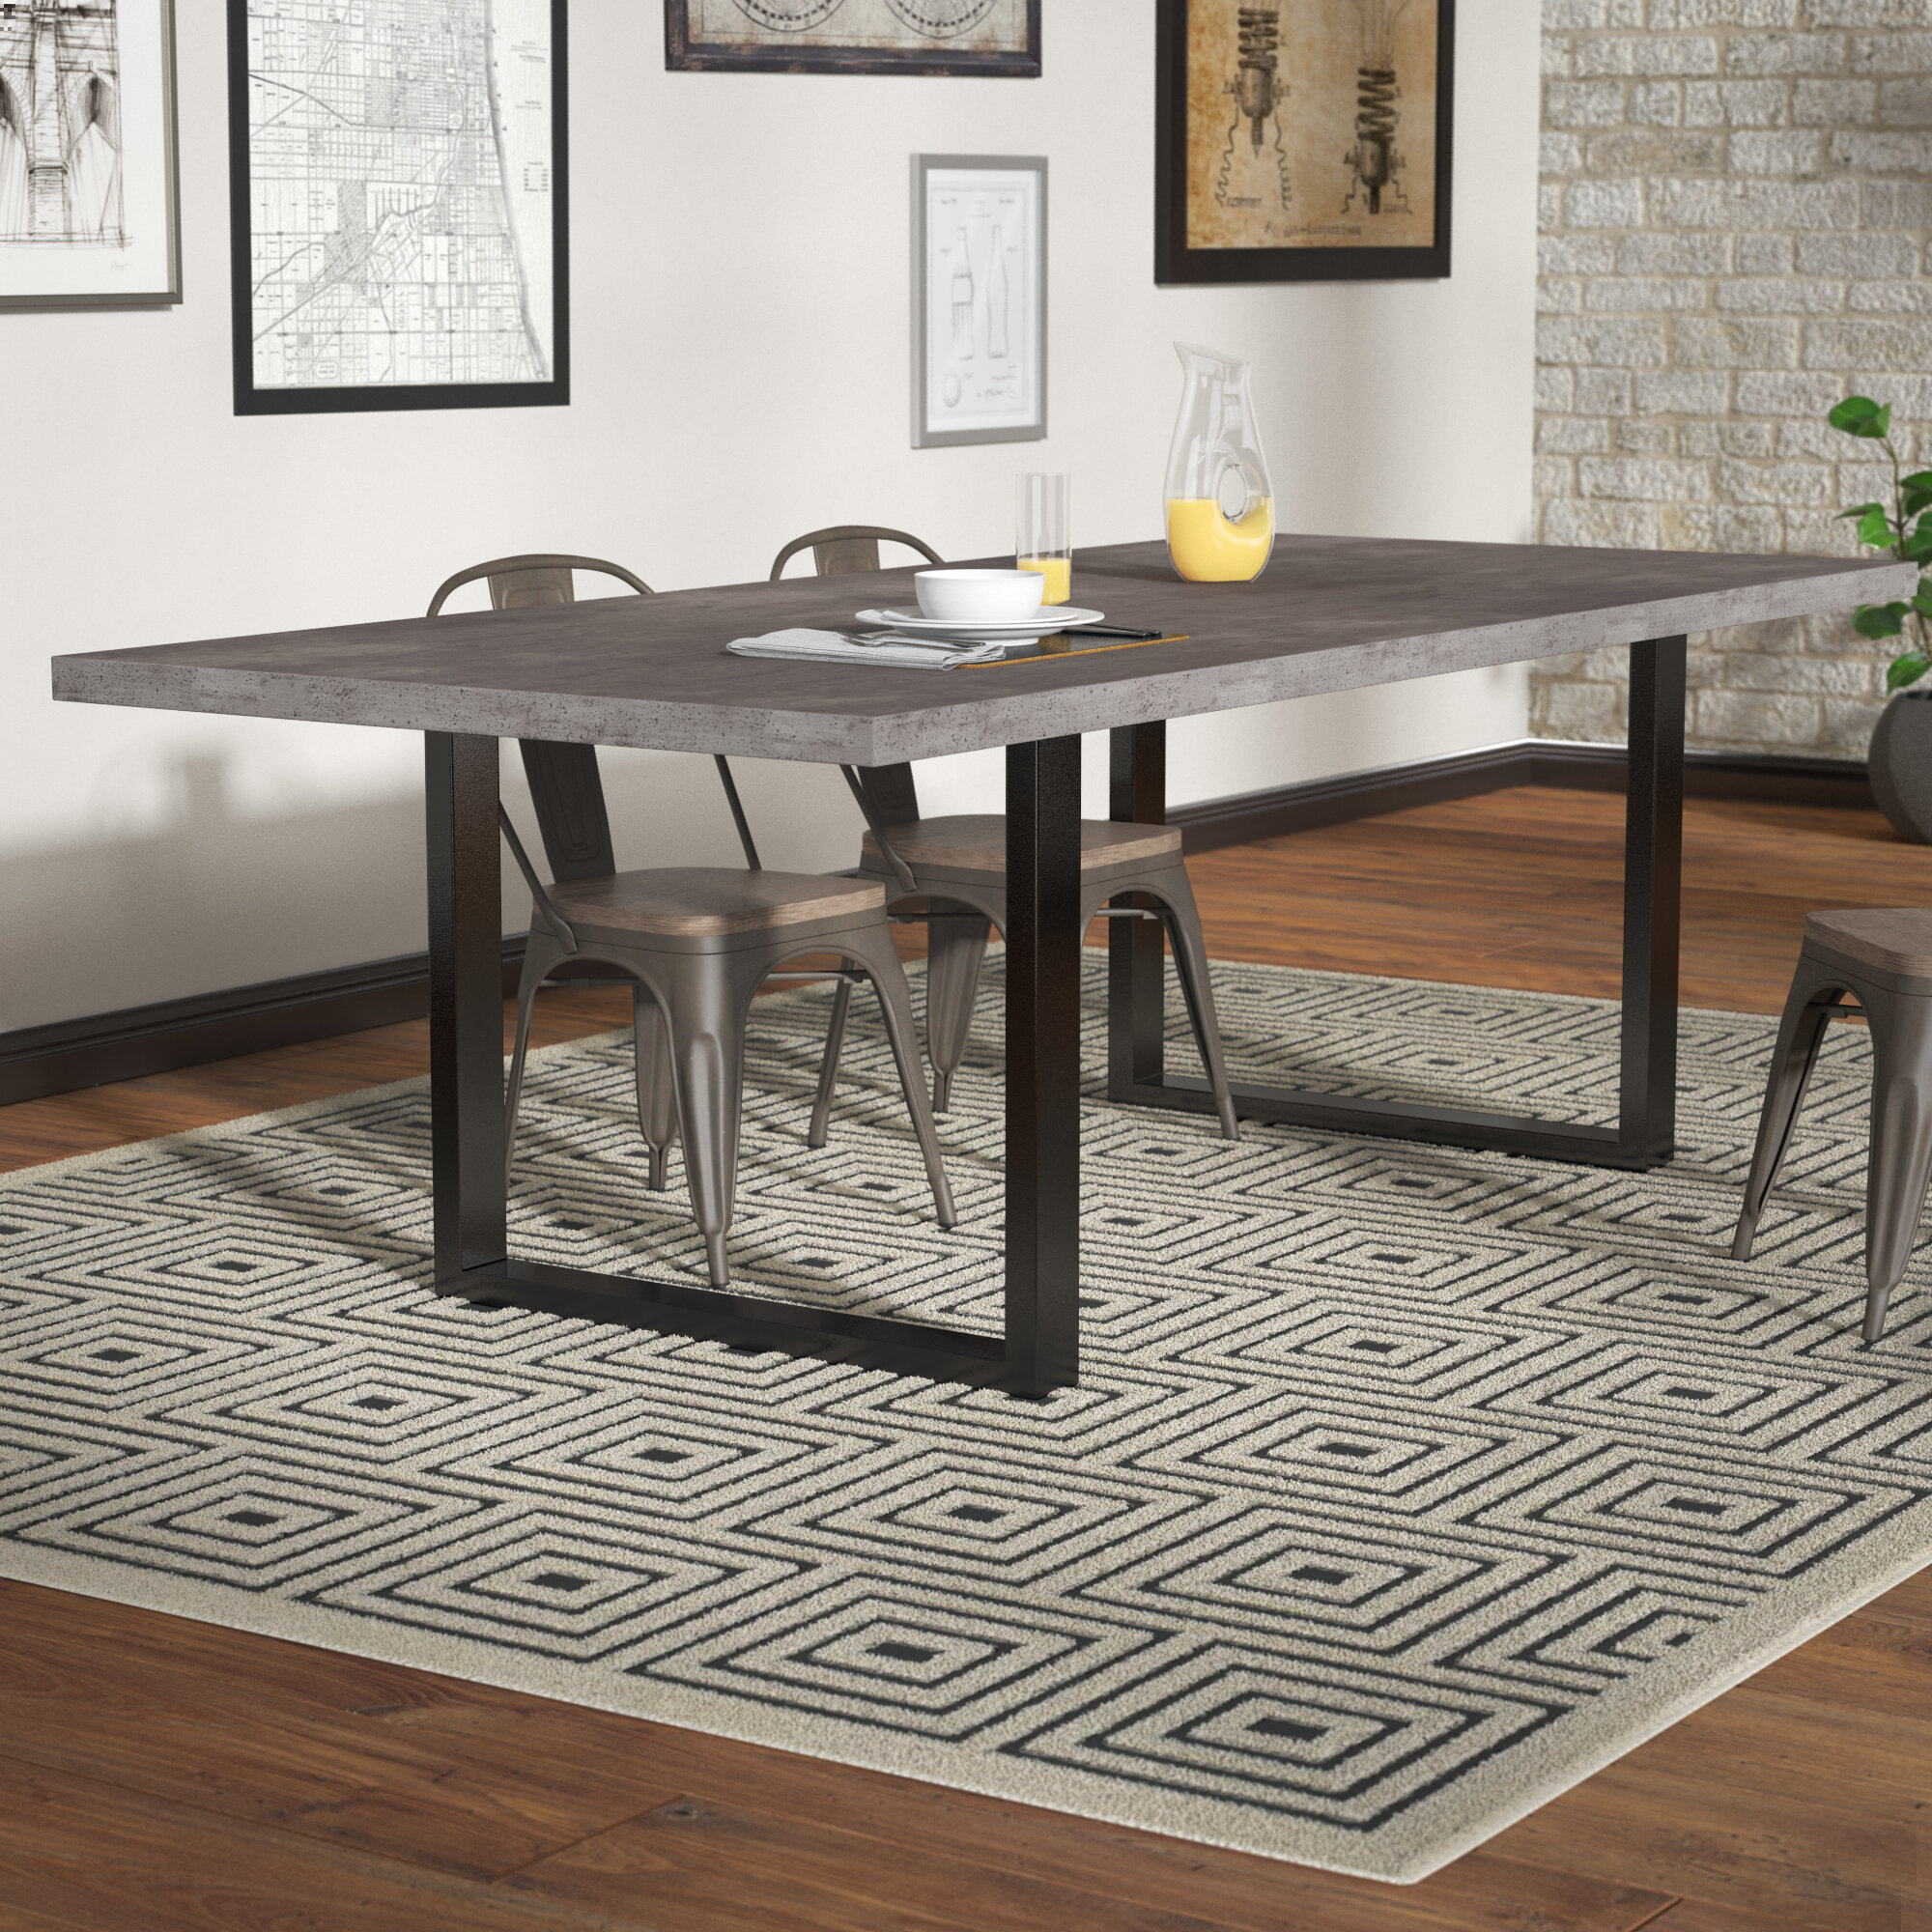 Carnarvon concrete dining table reviews birch lane